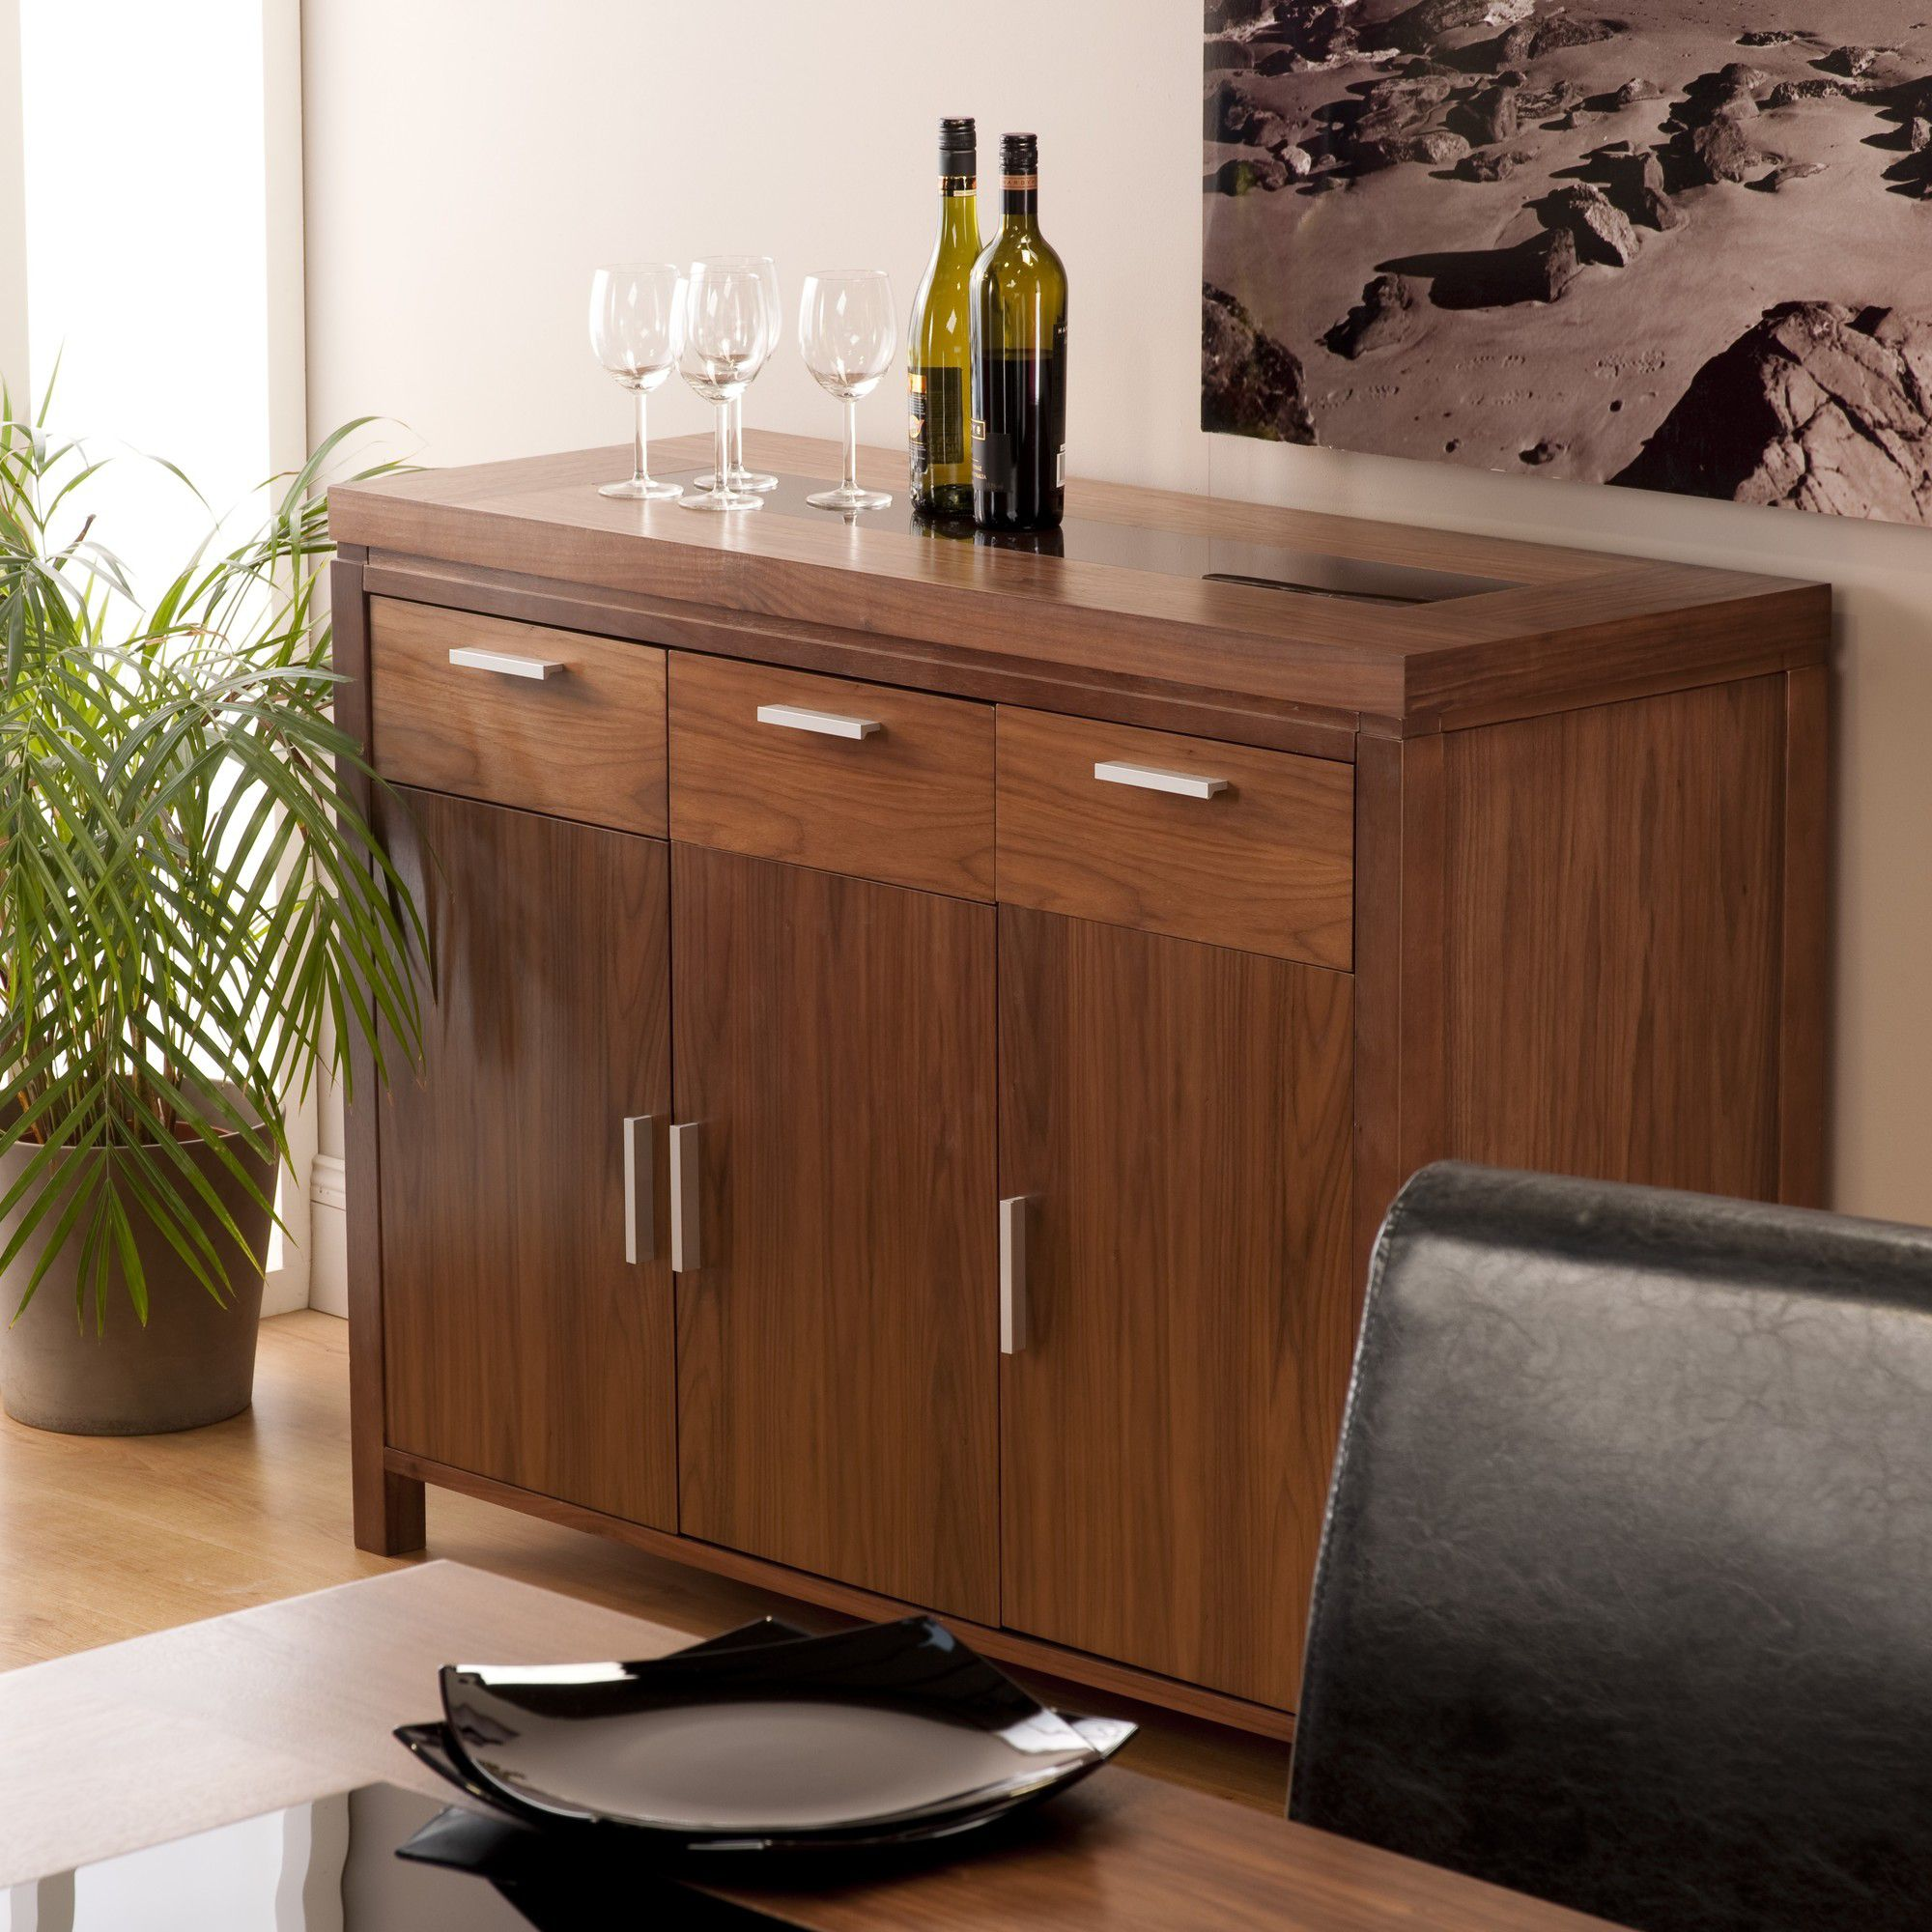 World Furniture Nevada Sideboard at Tesco Direct